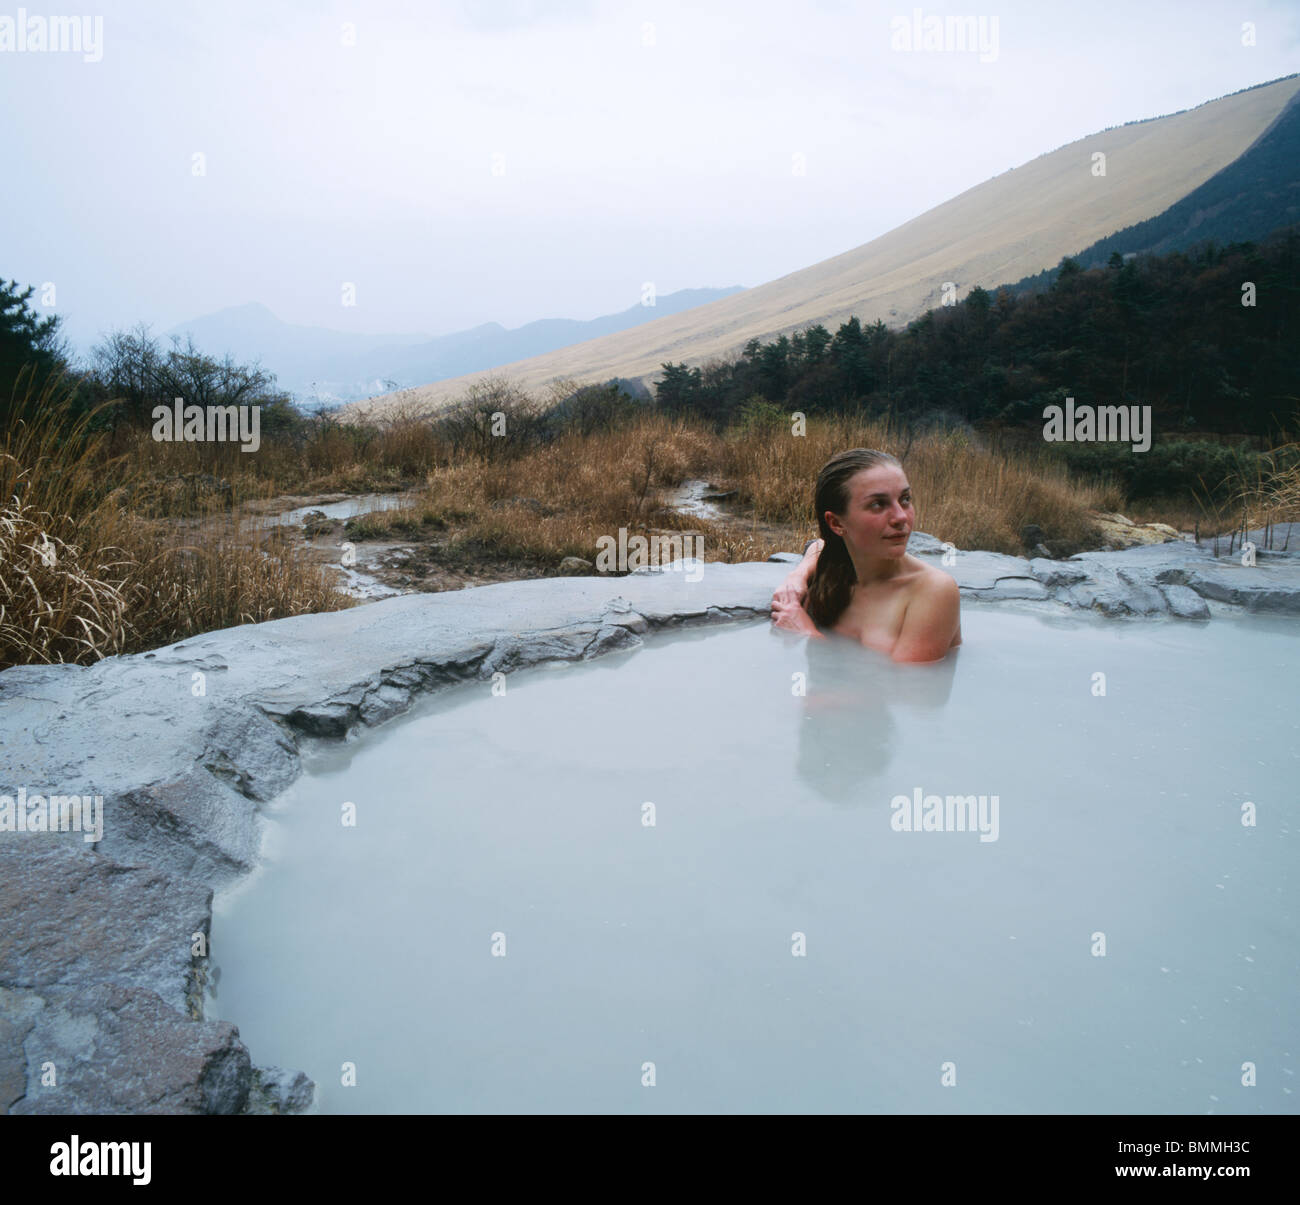 Japanese Onsen Woman Stock Photos & Japanese Onsen Woman Stock ...